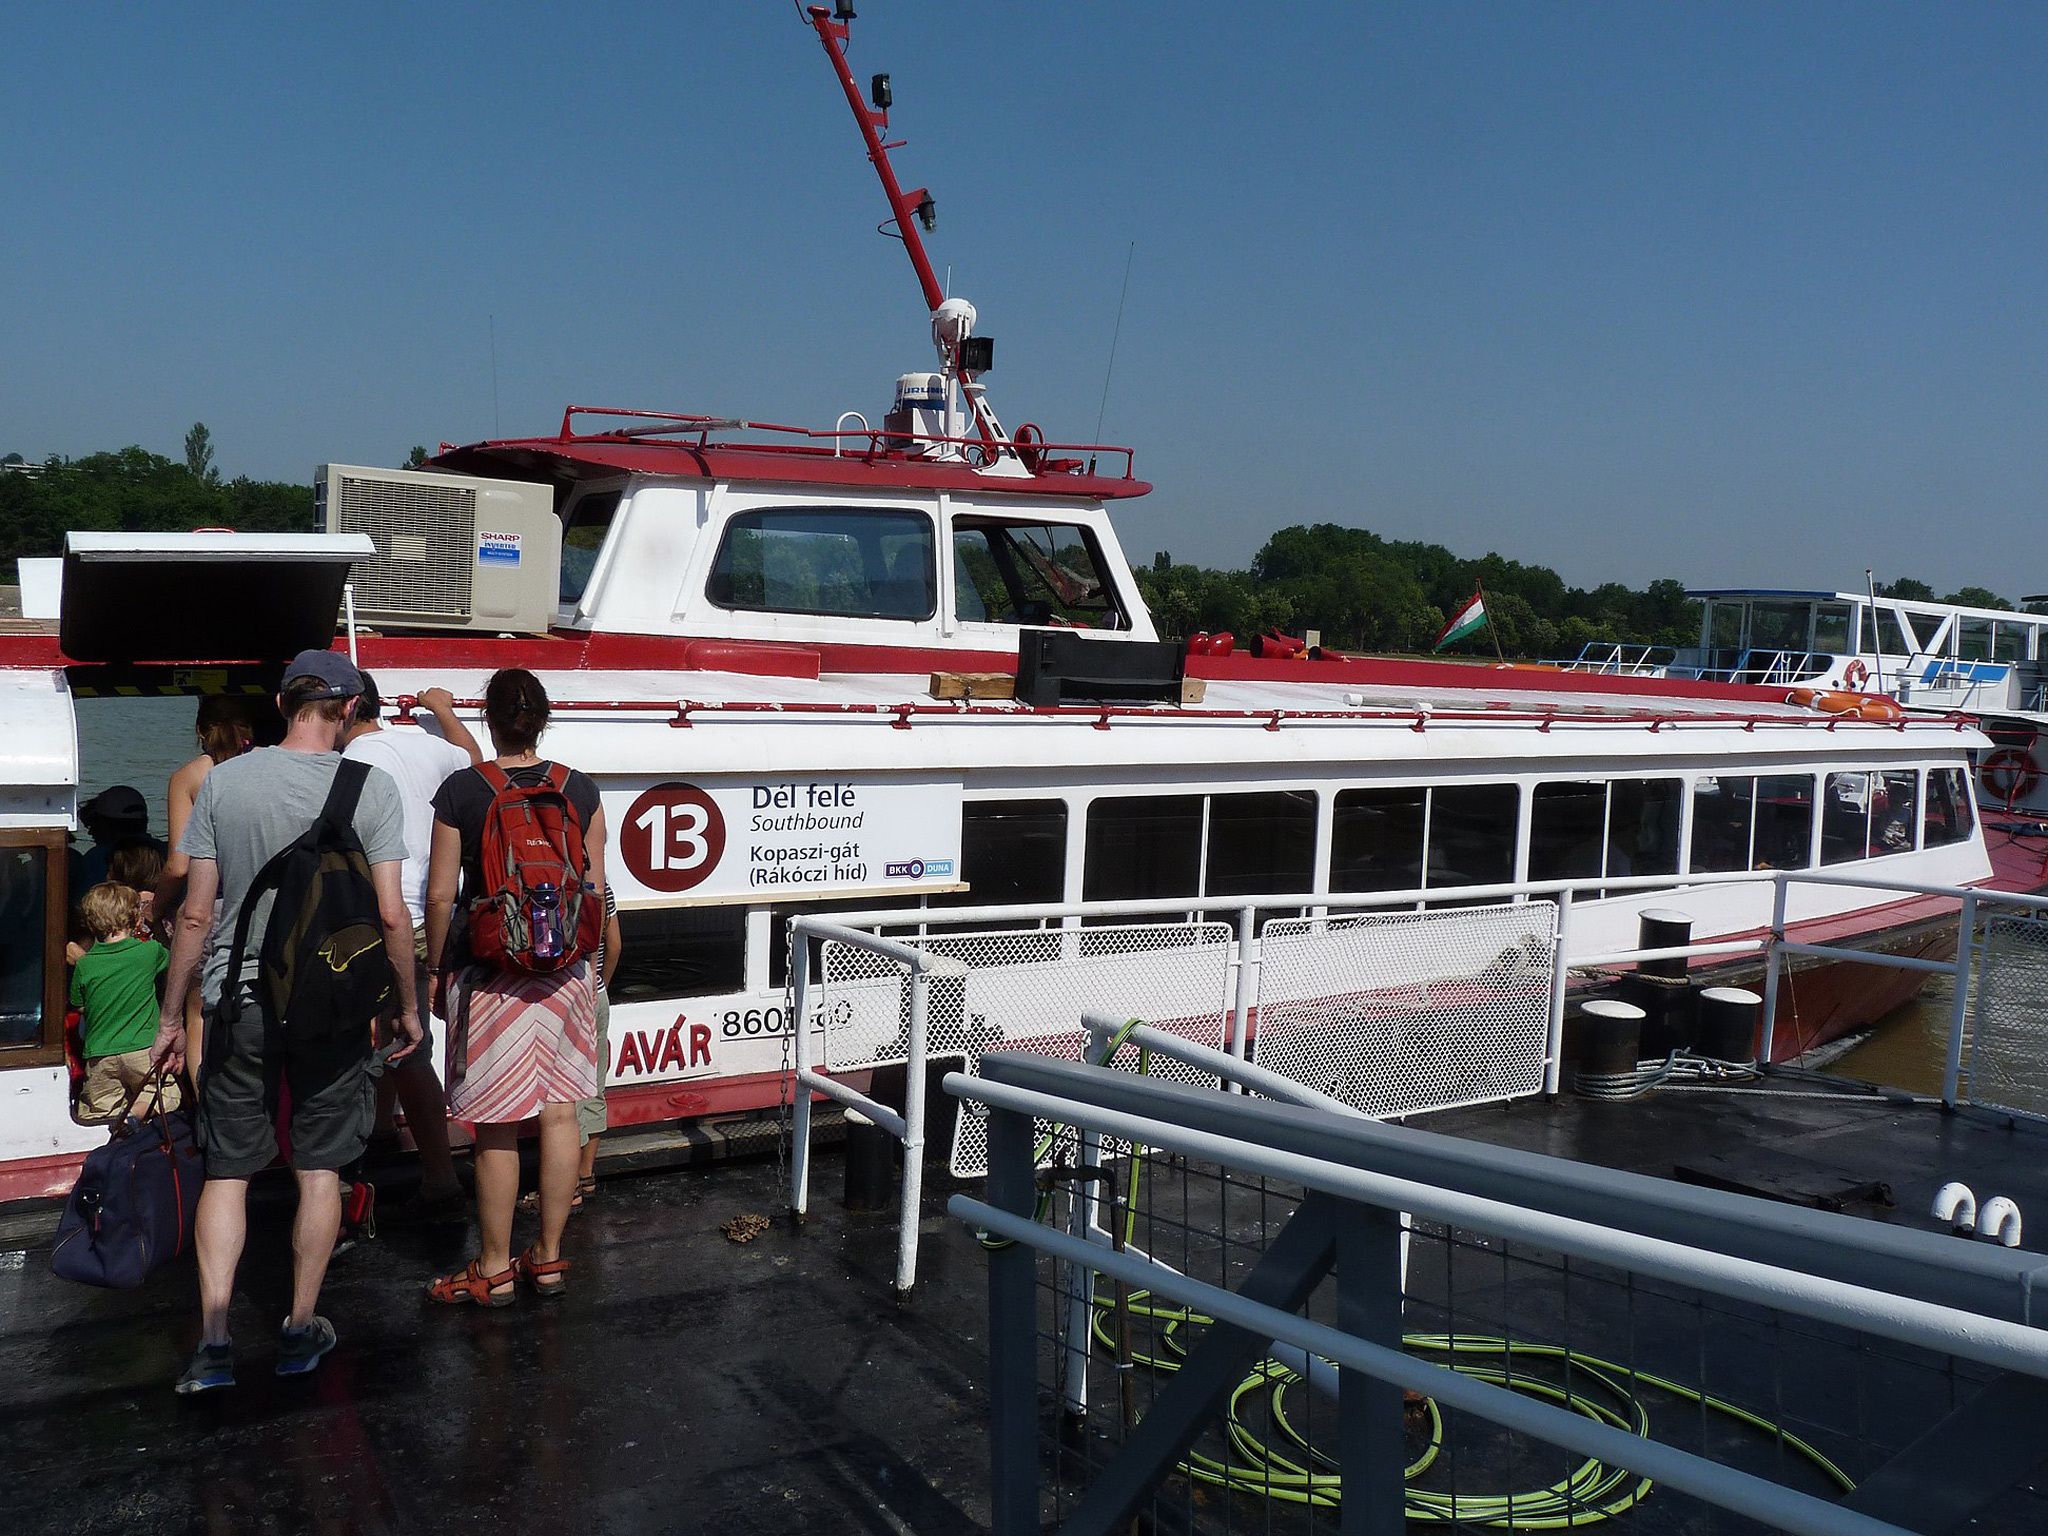 The D13 BKK Boat in Budapest